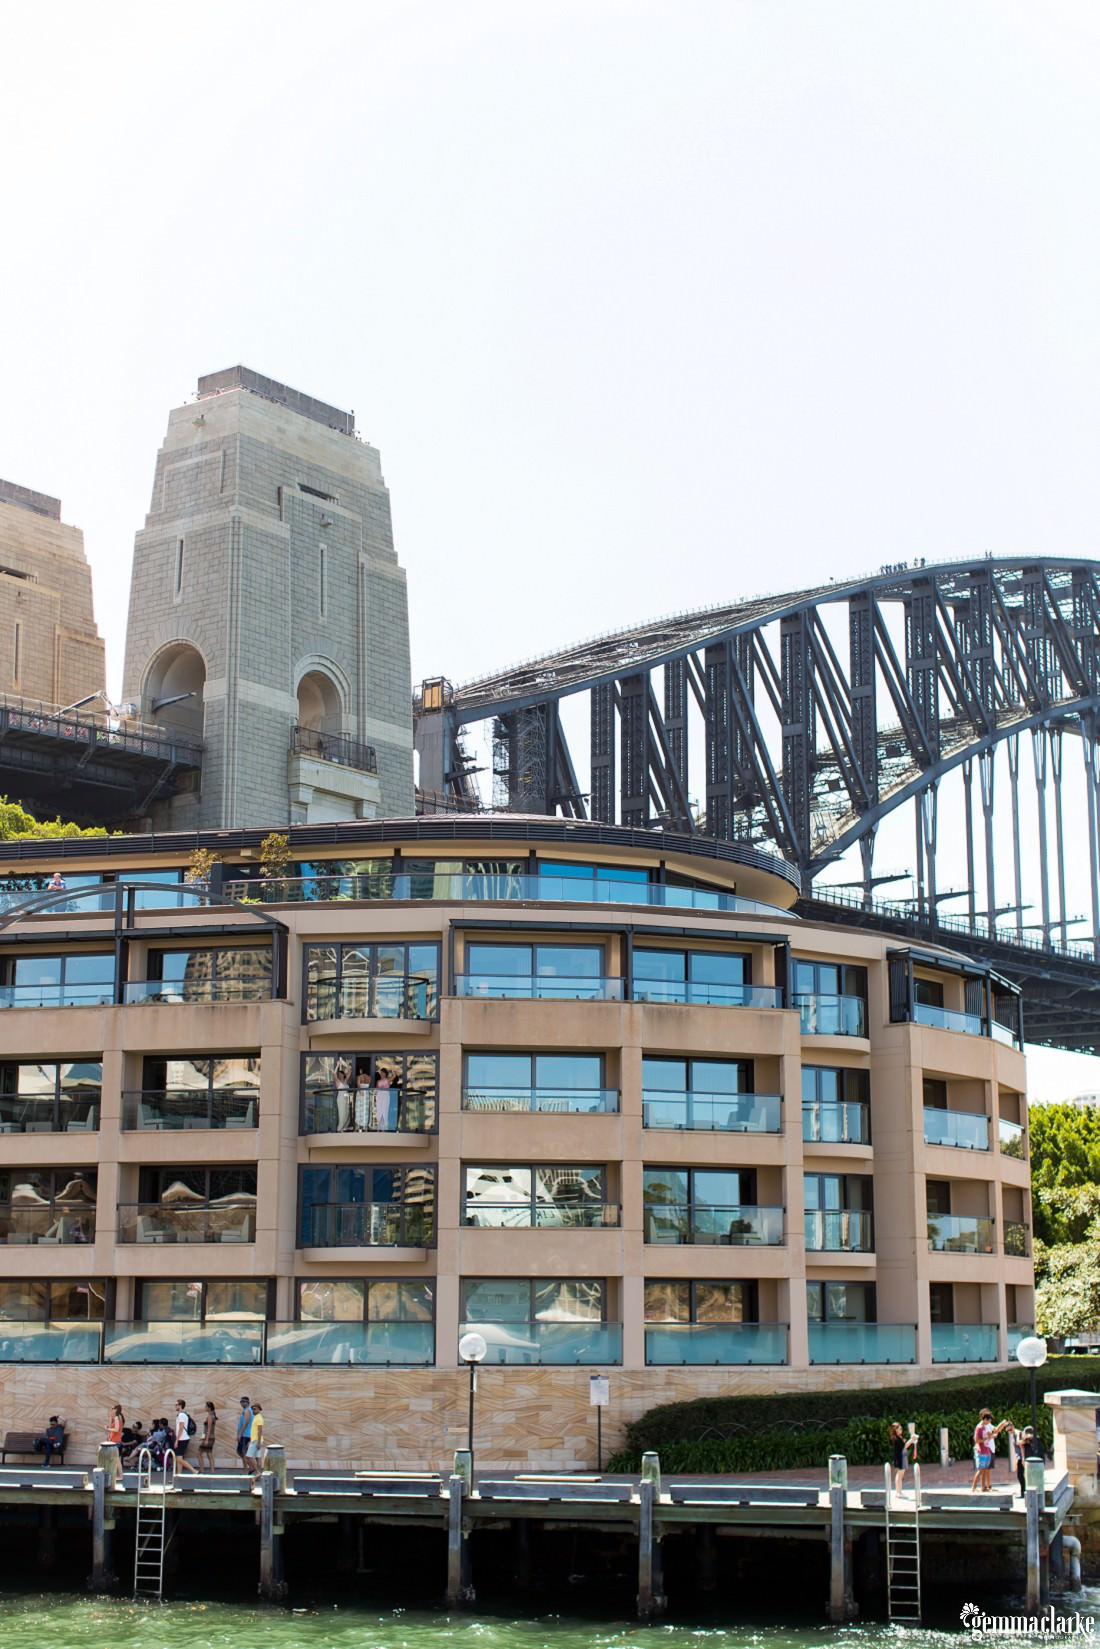 A distant shot of bridesmaids waving from the balcony of a hotel with the Sydney Harbour Bridge in the background